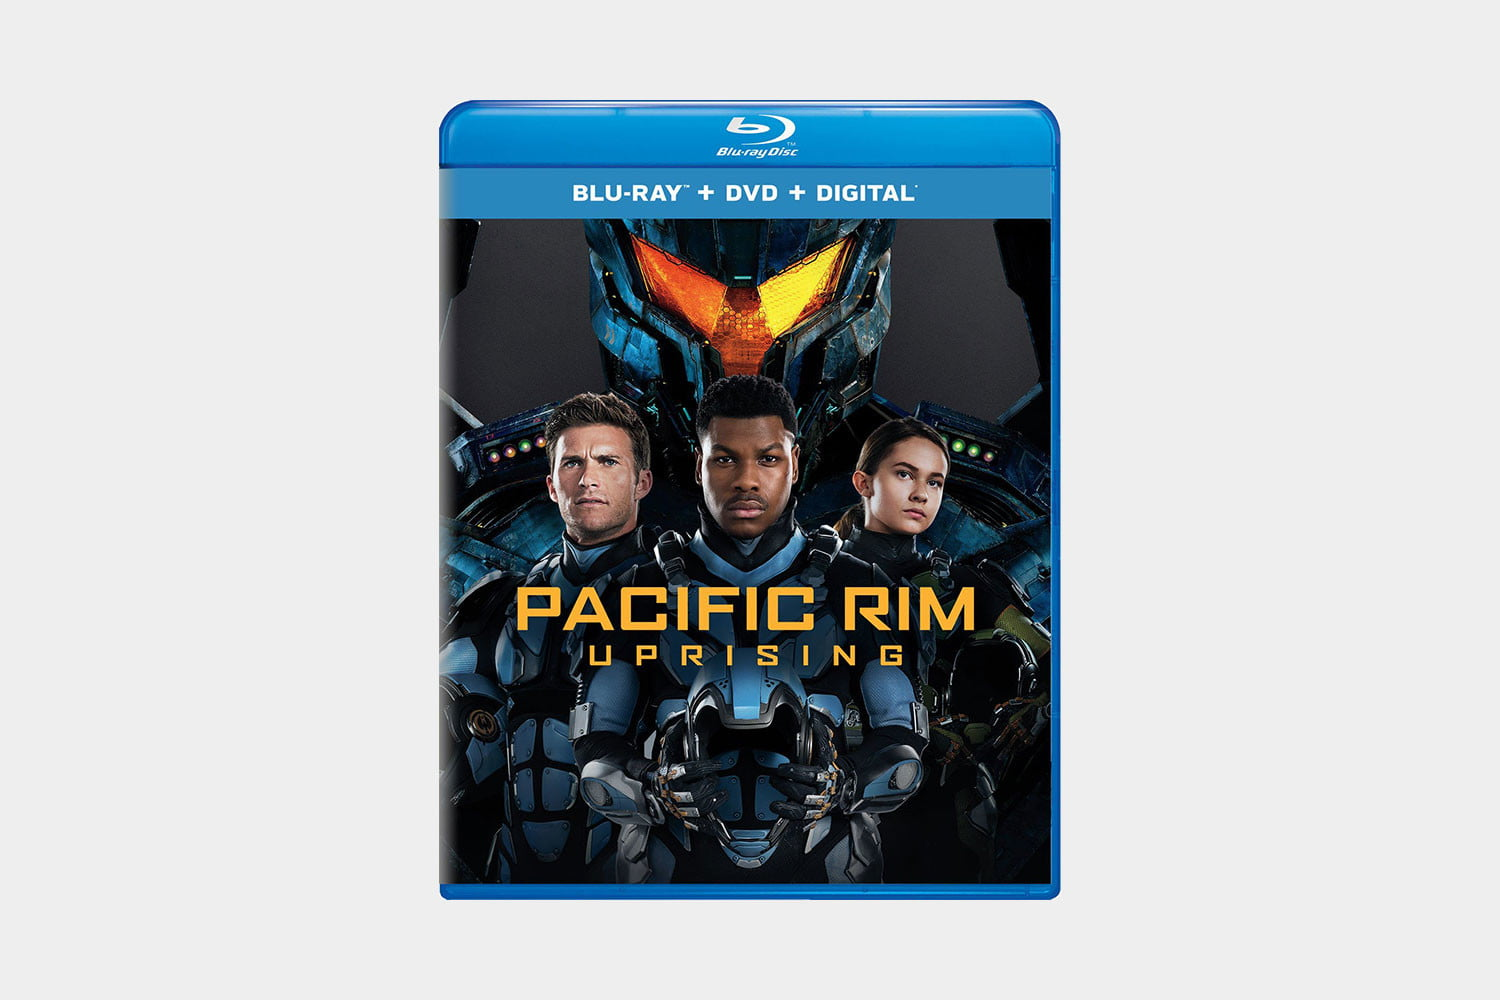 best blu ray discs show home theater pacific rim uprising cover